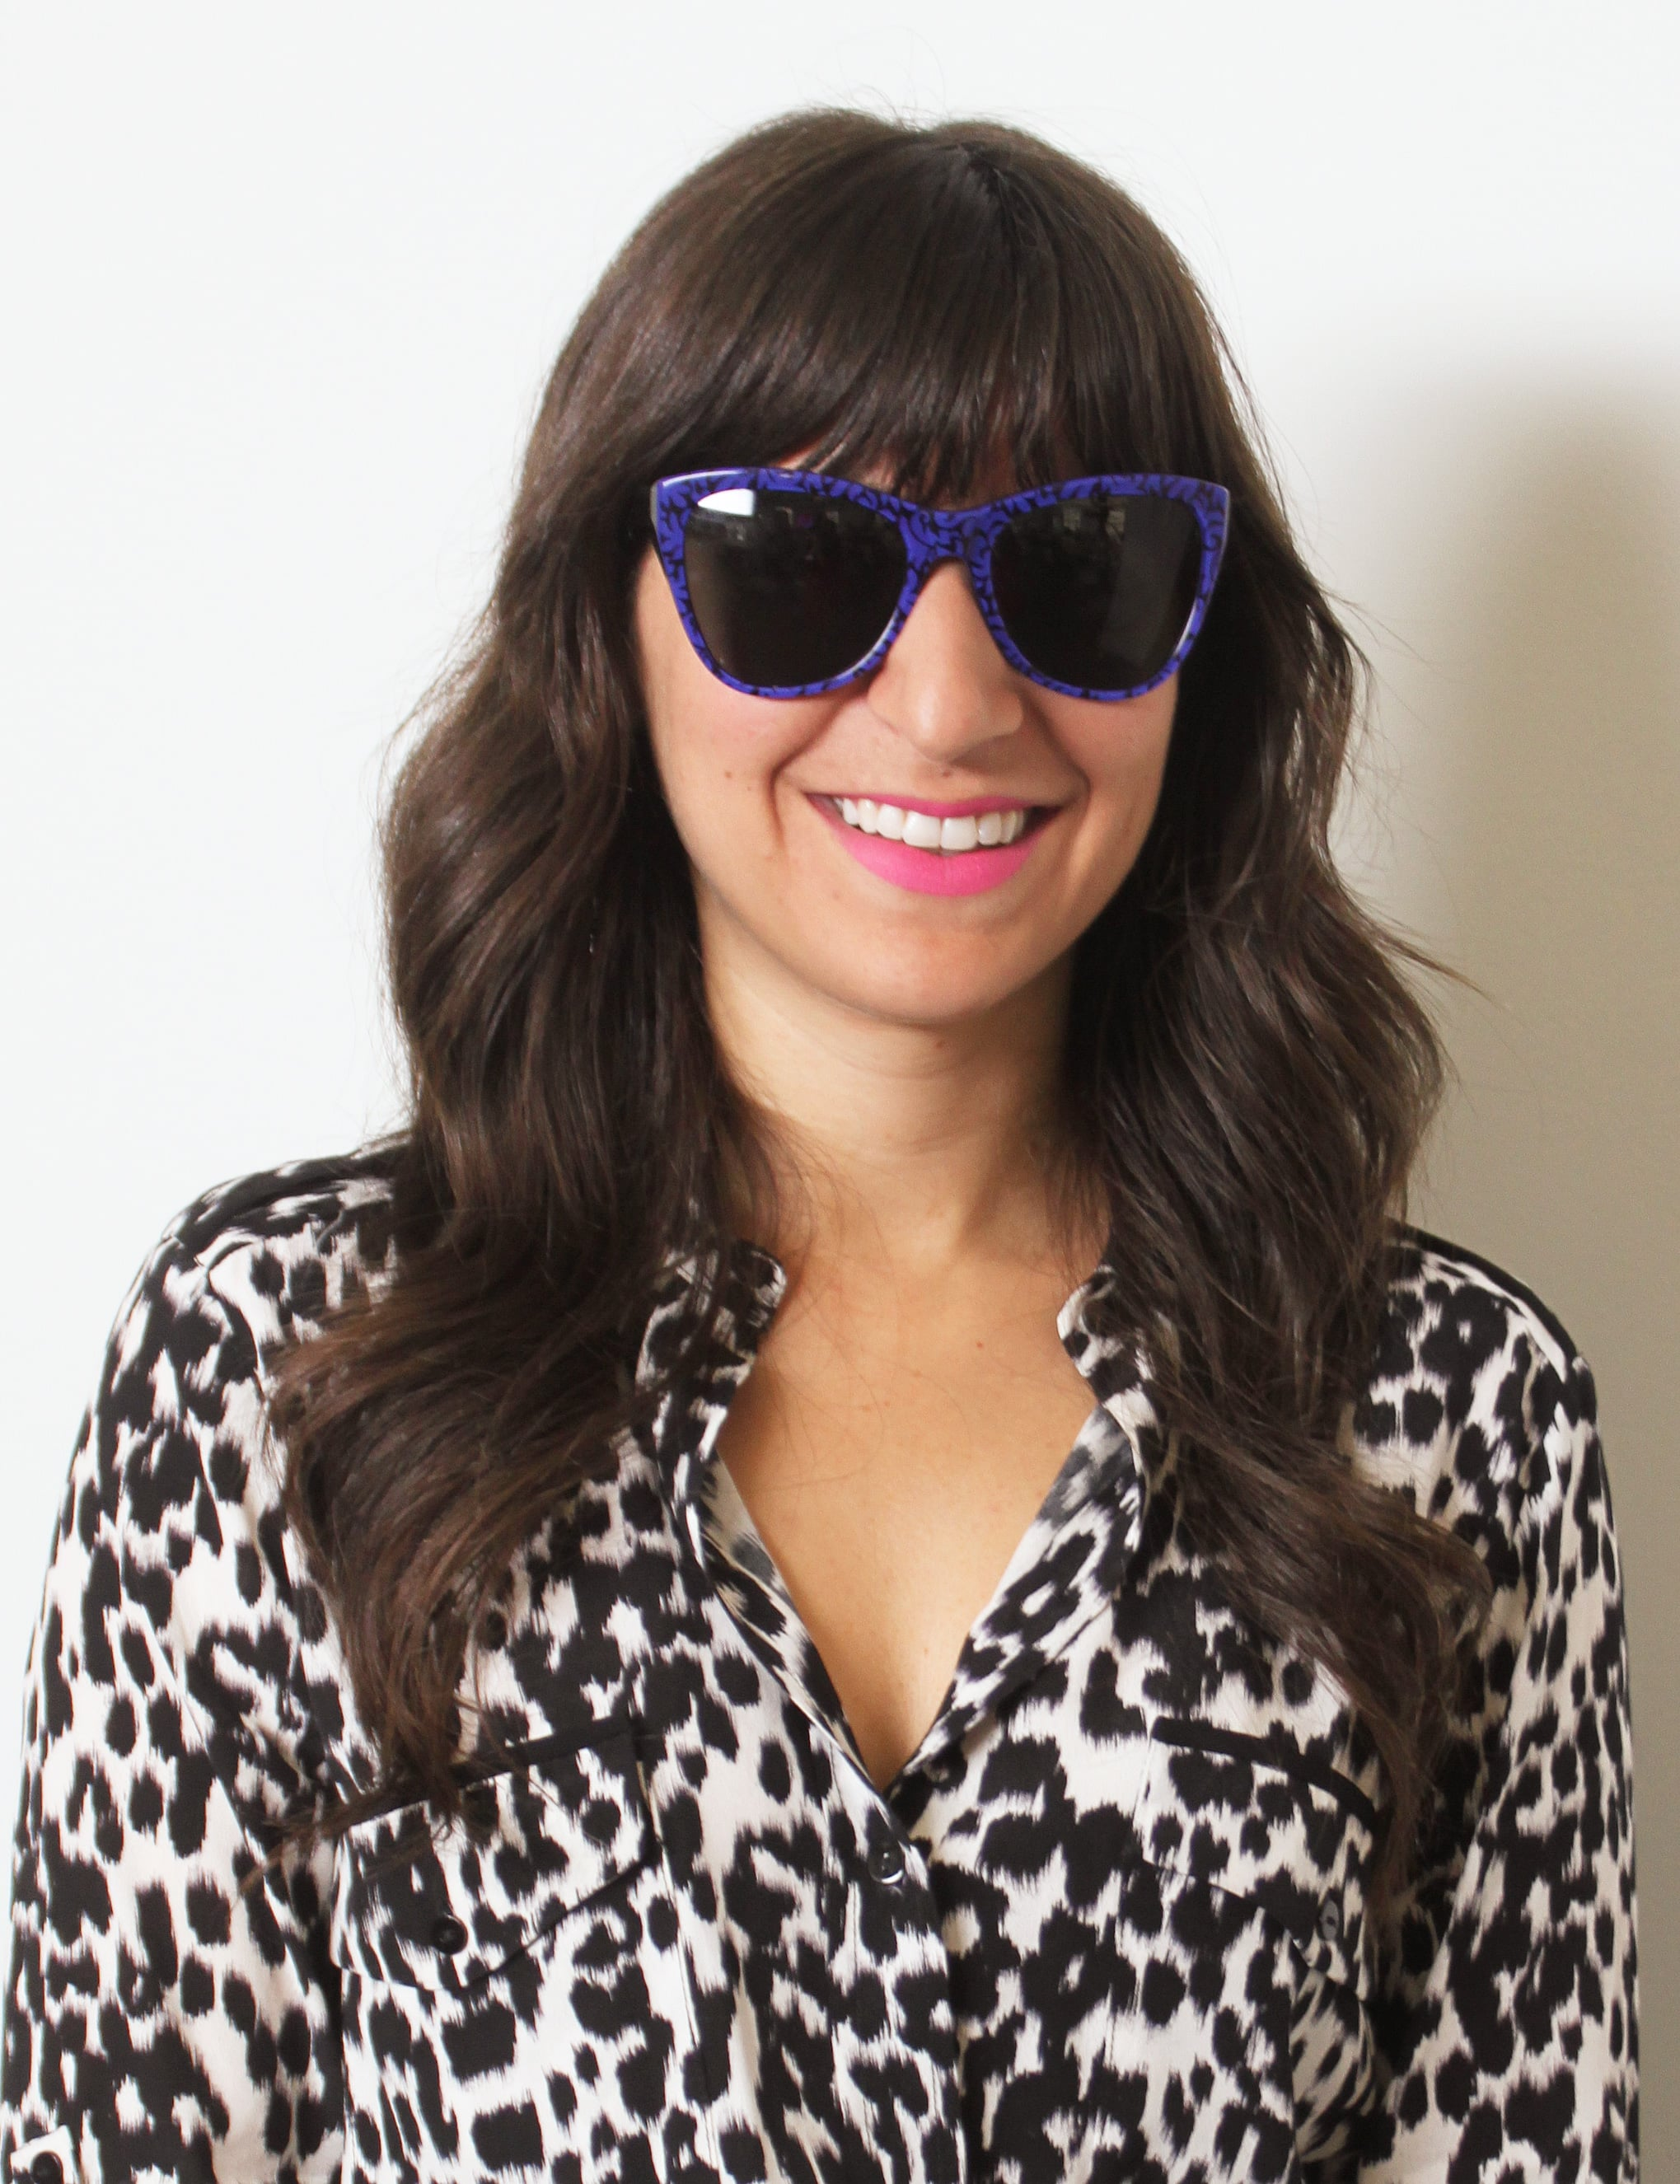 These bold blue Stella McCartney cat-eye shades ($225) feel so summery. Go all the way by pairing them with a nearly neon lipstick like Illamasqua in Luster ($28).